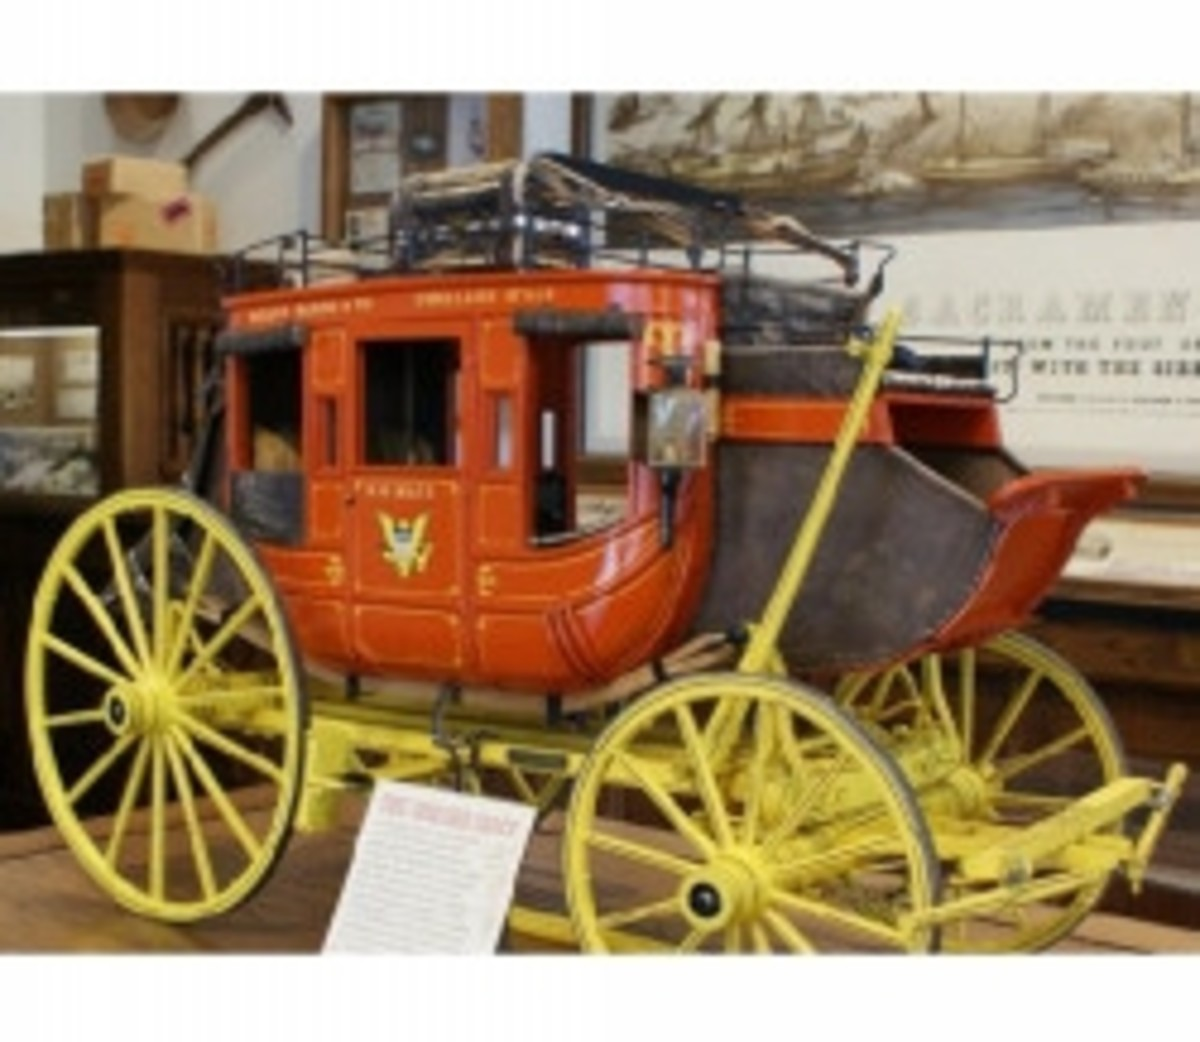 Scaled-down replica of a Concord Coach, used by Wells Fargo, in their old Sacramento, CA museum.